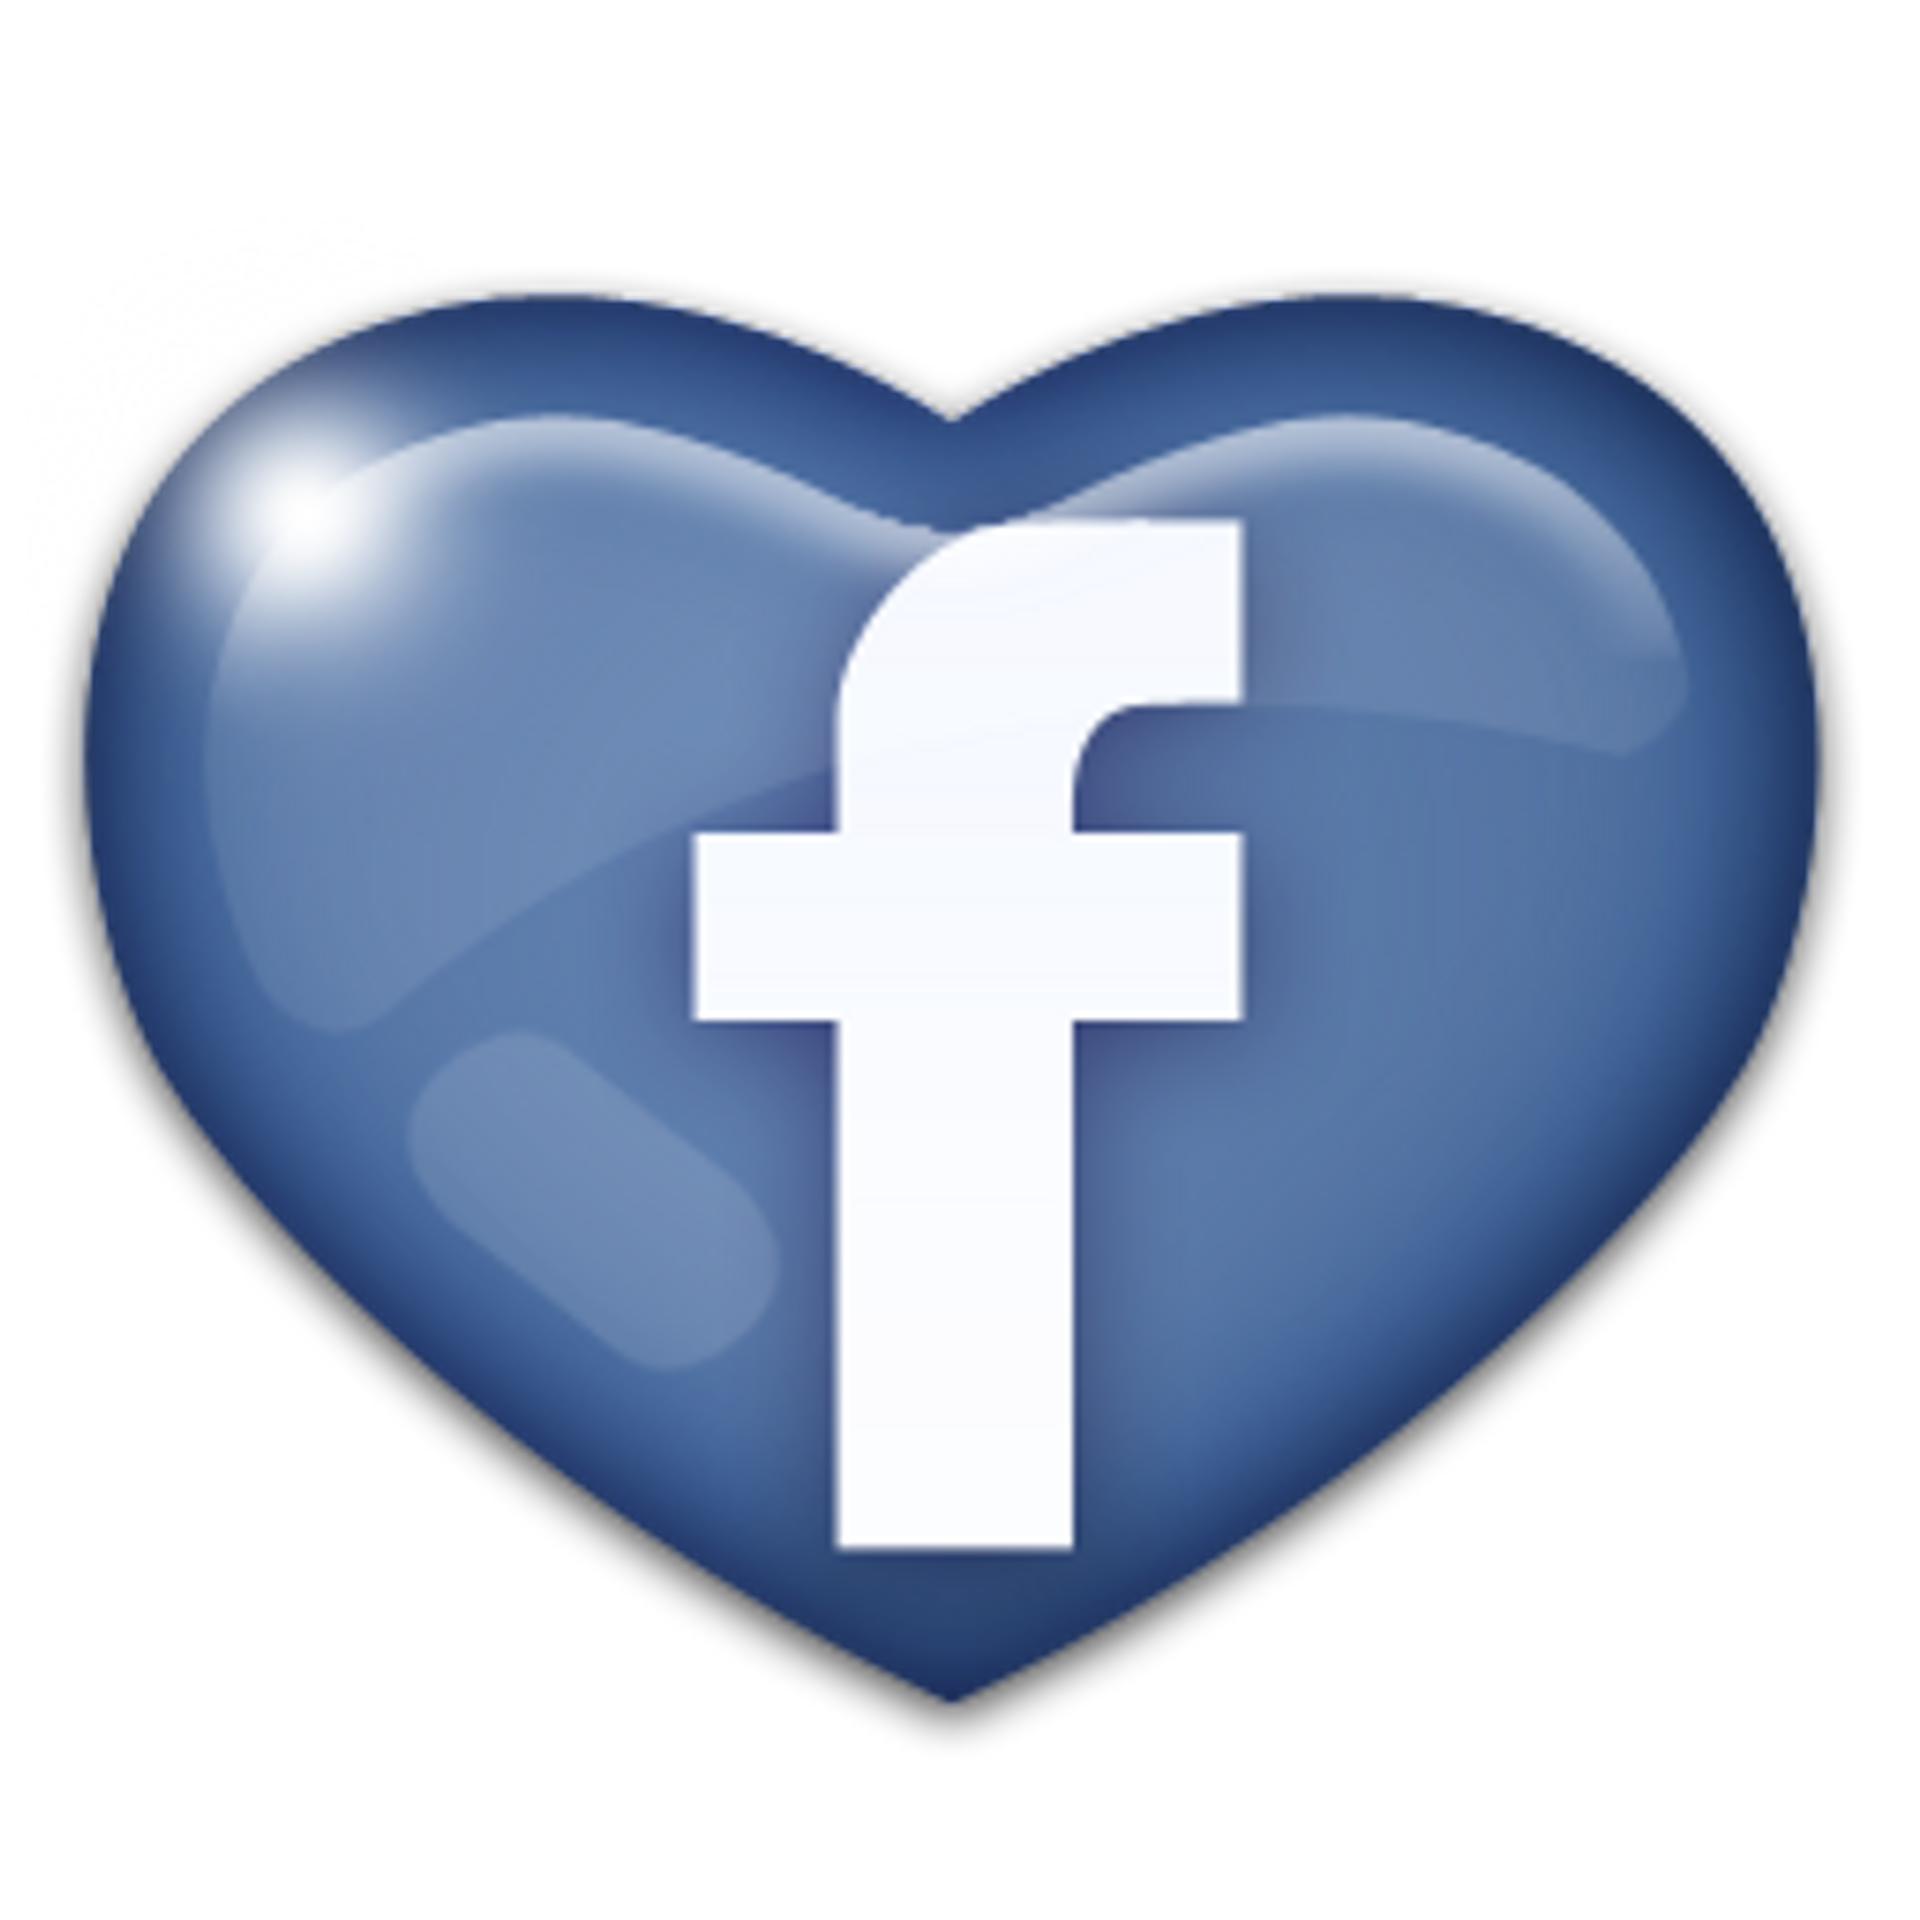 kisspng-facebook-animation-computer-icons-like-button-5af6442d7747a1.8178166915260887494886.png